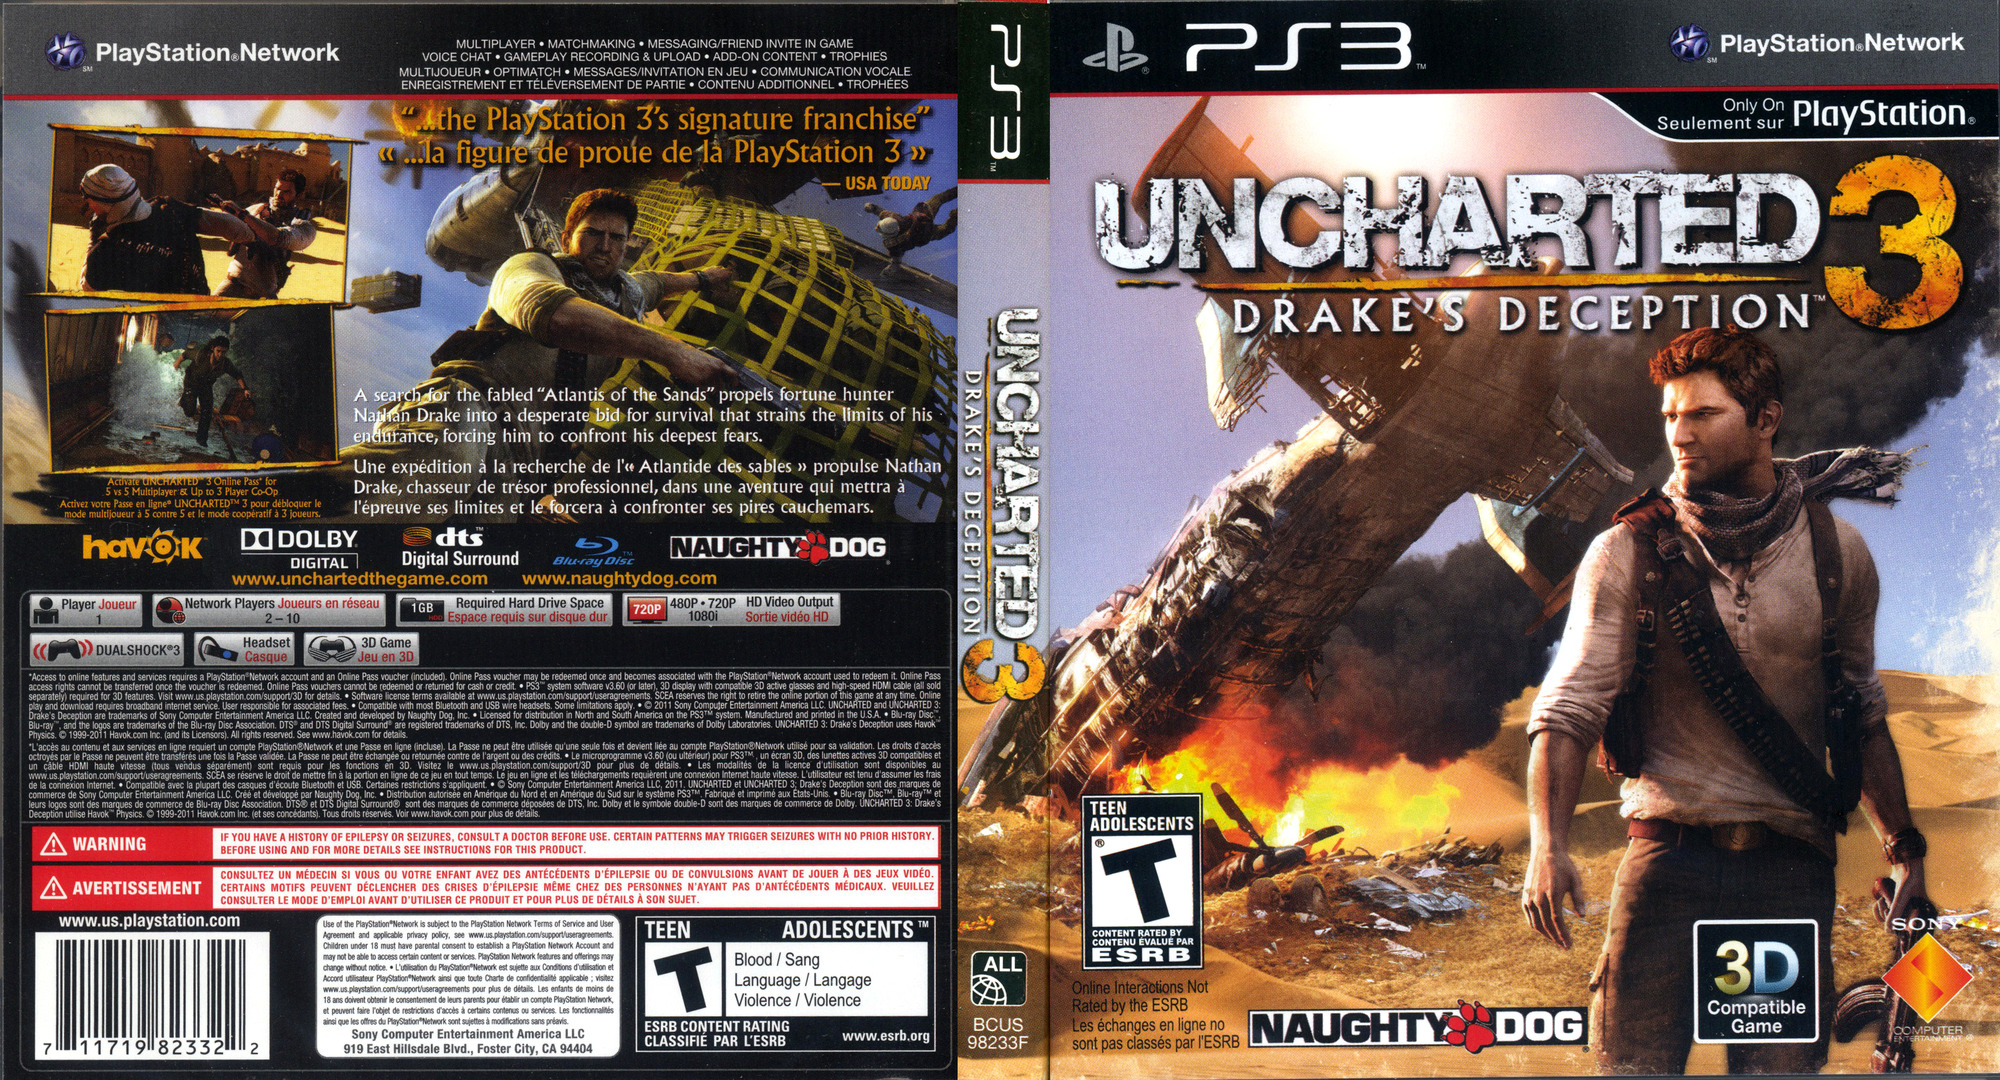 Uncharted 3: Drake's Deception PS3 coverfullHQ (BCUS98233)